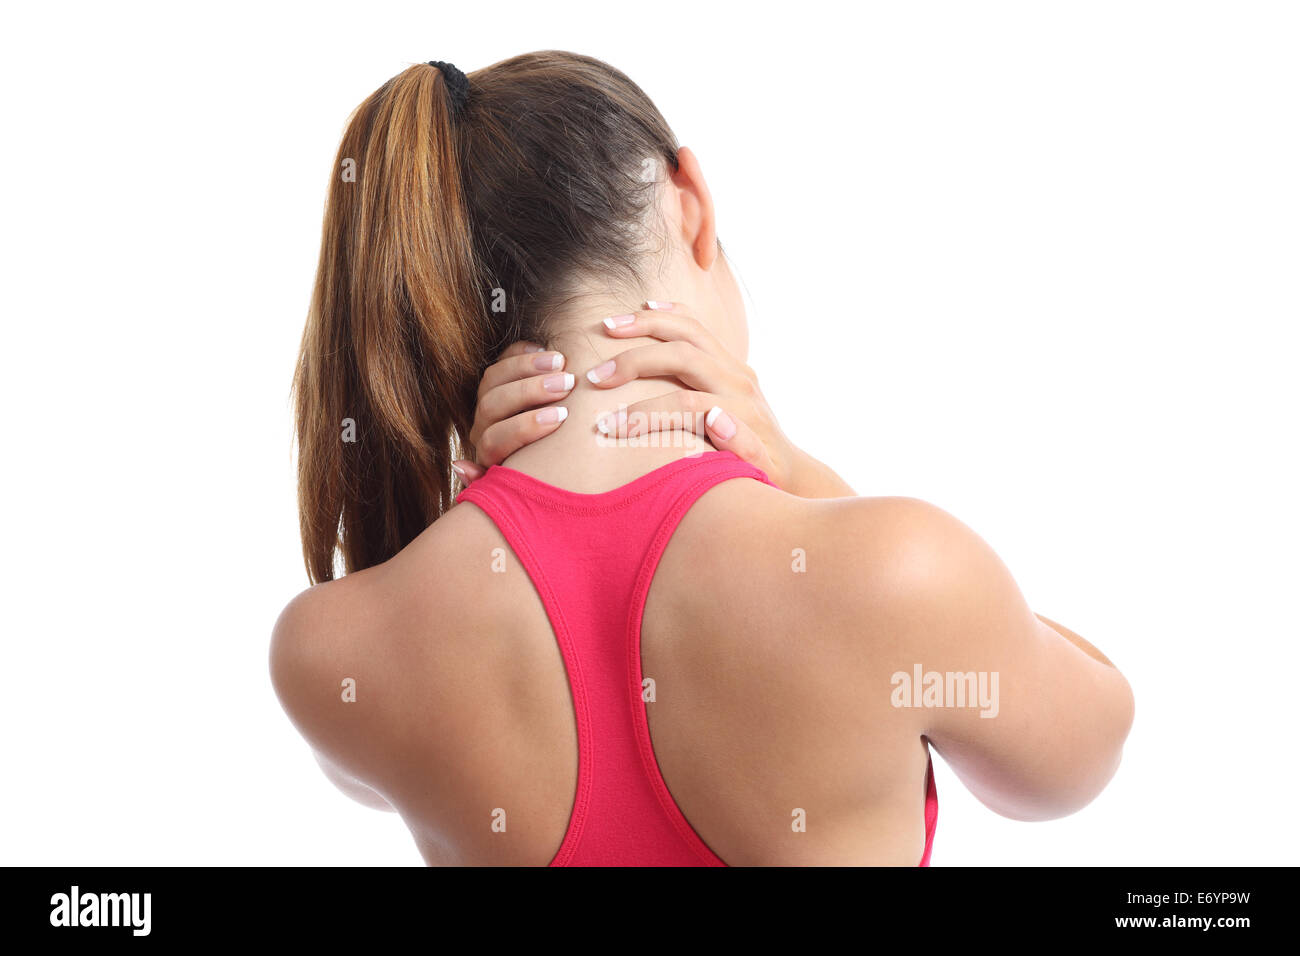 Back view of a fitness woman with neck pain isolated on a white background - Stock Image